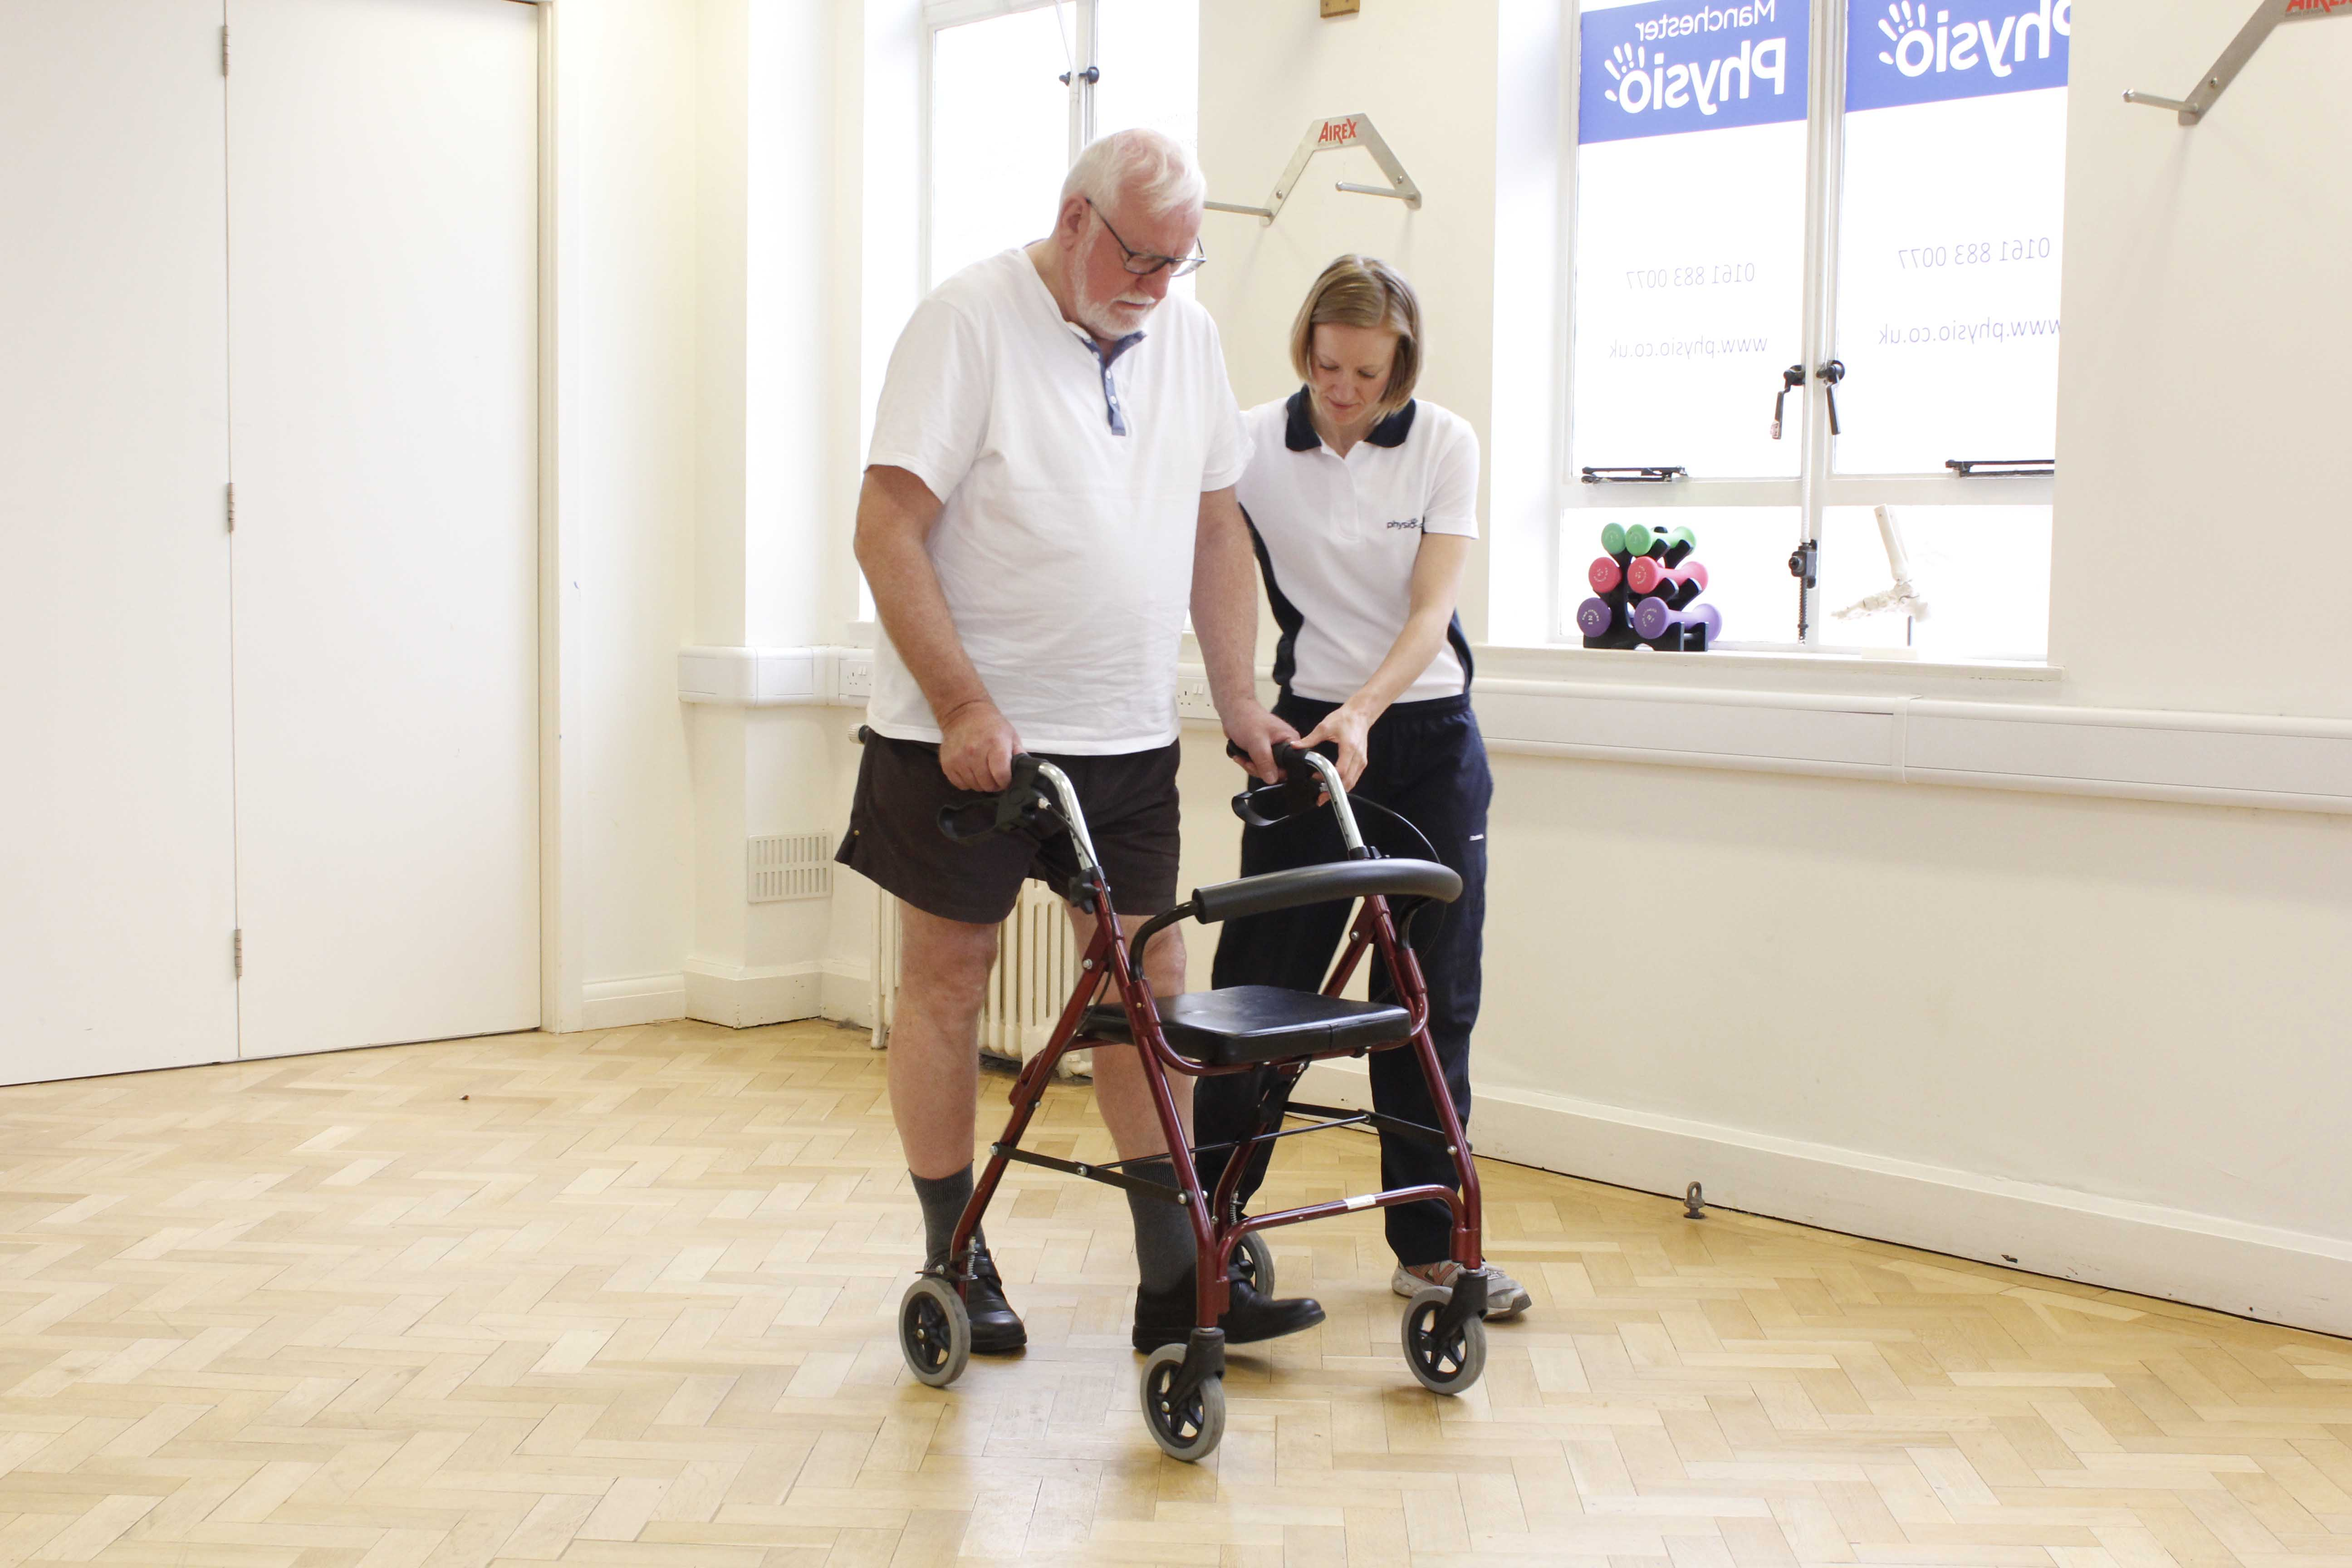 Specialist physiotherapist closely supervising mobility exercises using a rollator frame